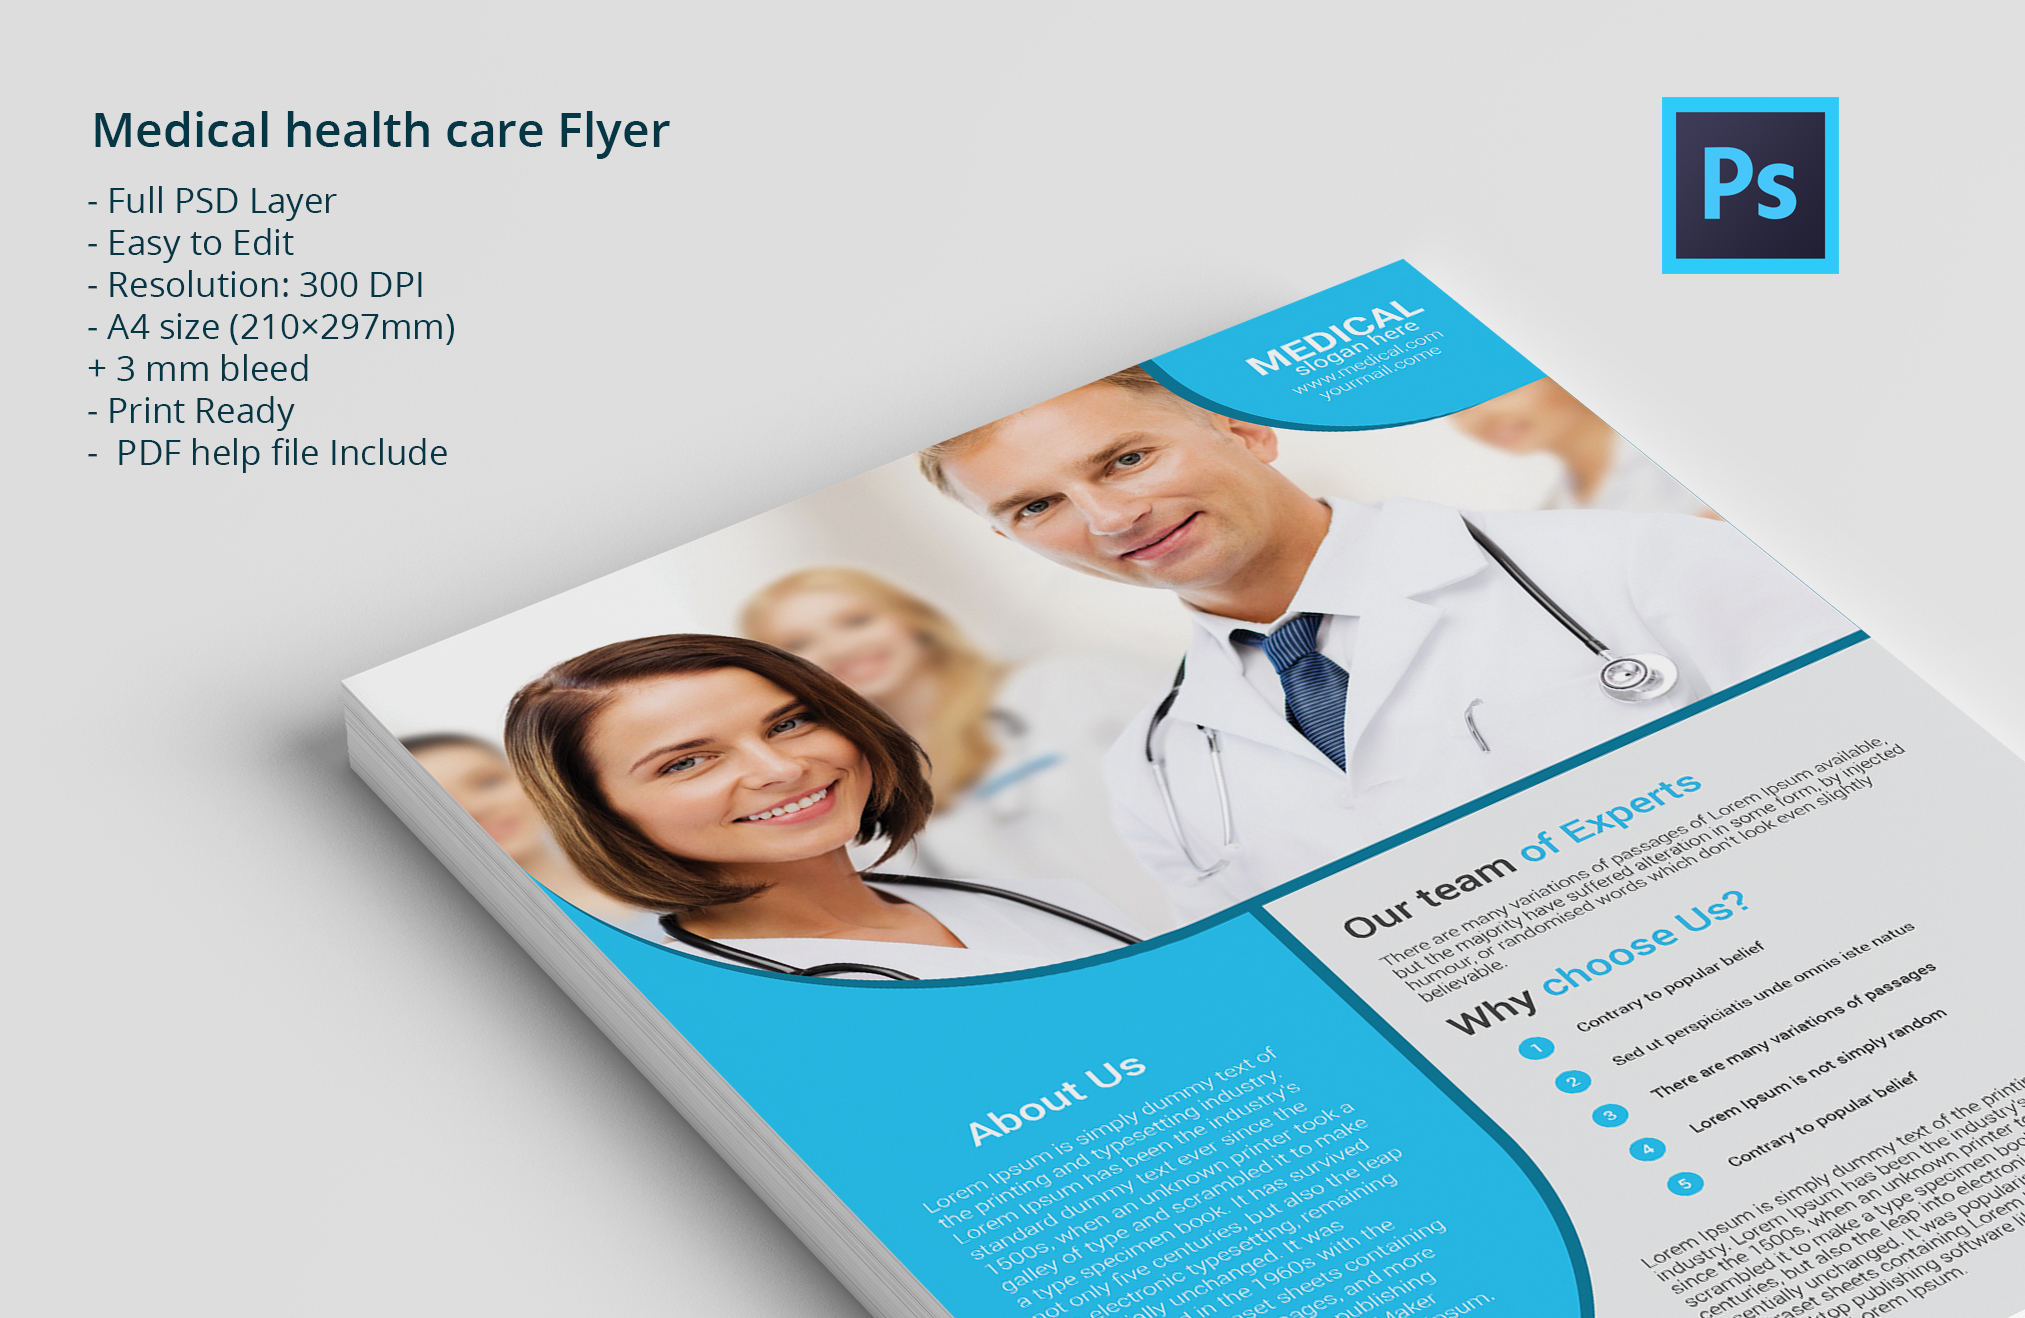 health brochure templates - medical health care flyer flyer templates on creative market